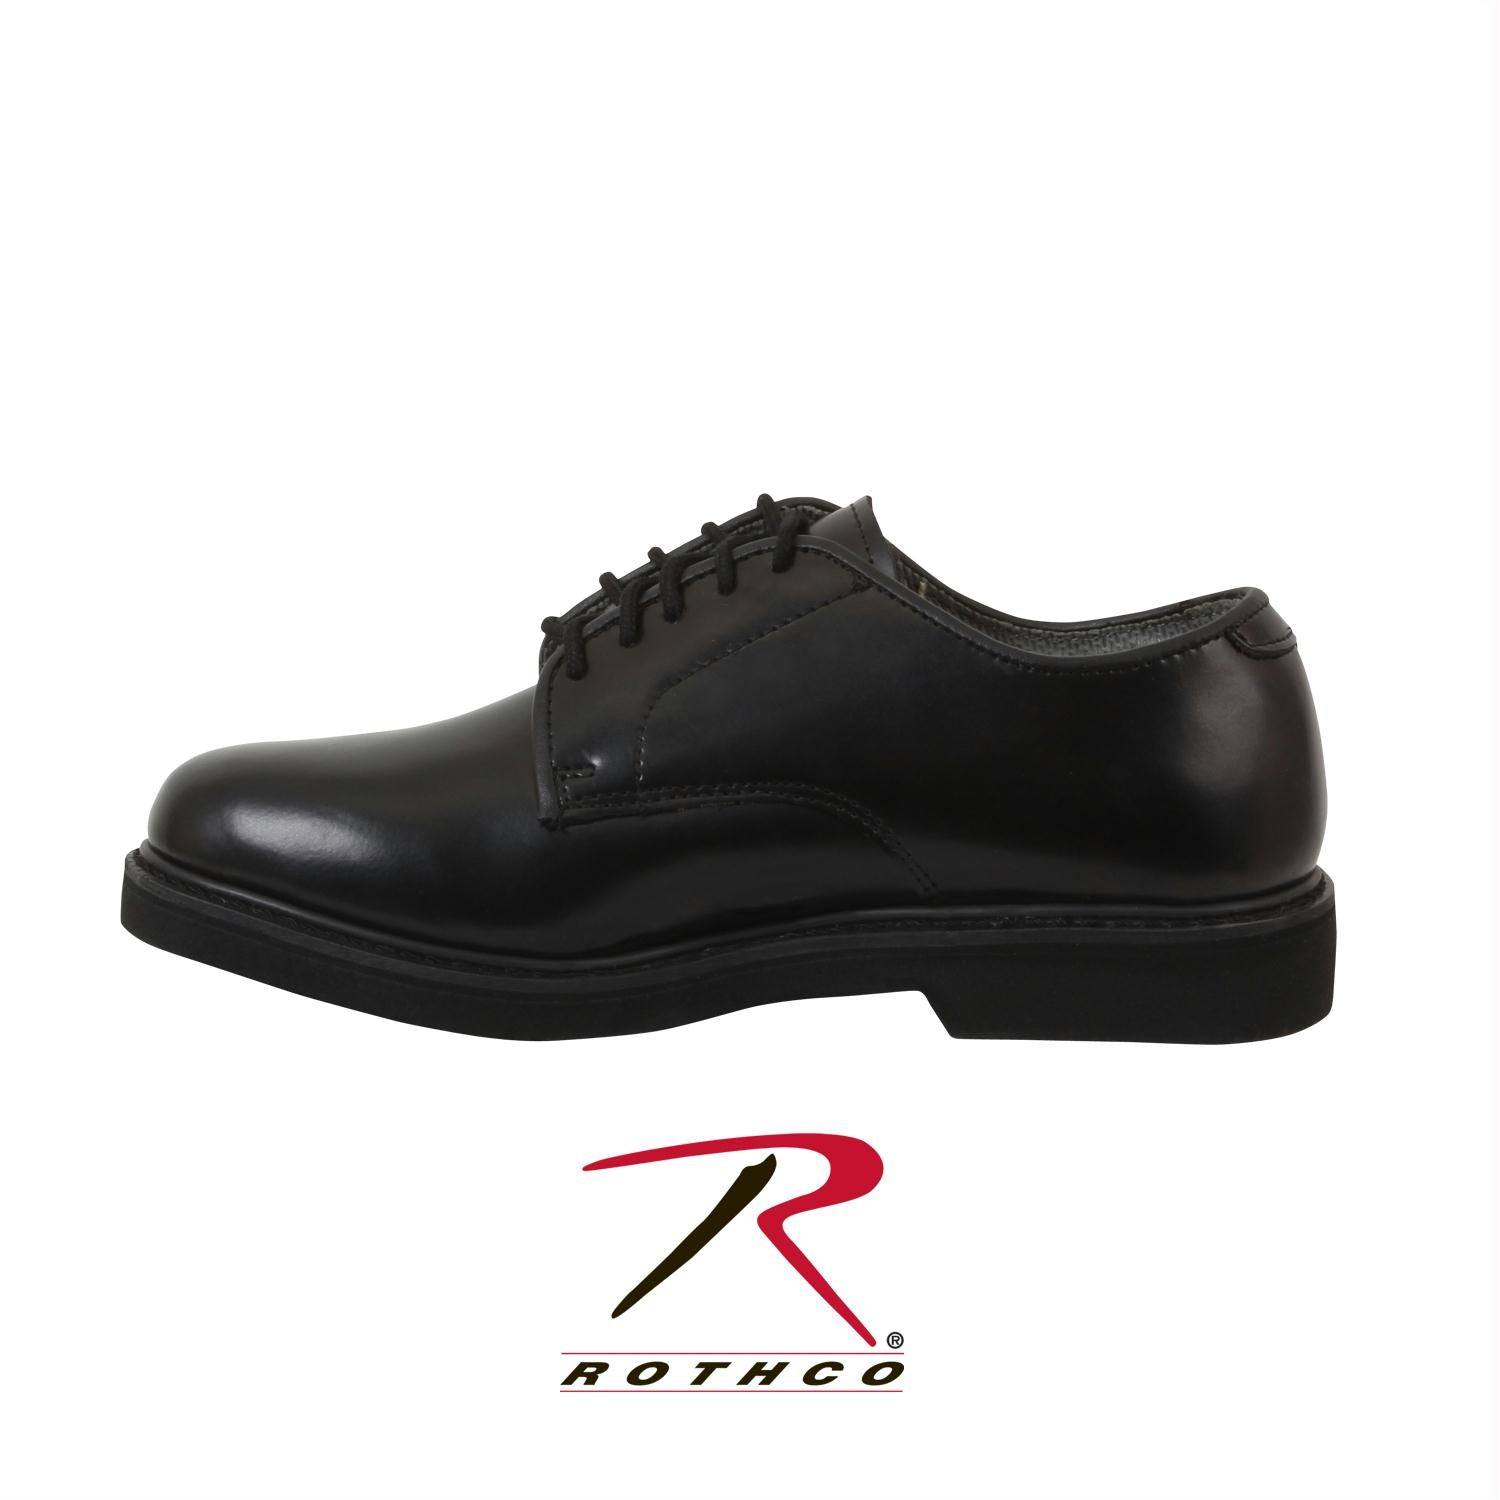 Rothco Military Uniform Oxford Leather Shoes - 15 / Regular